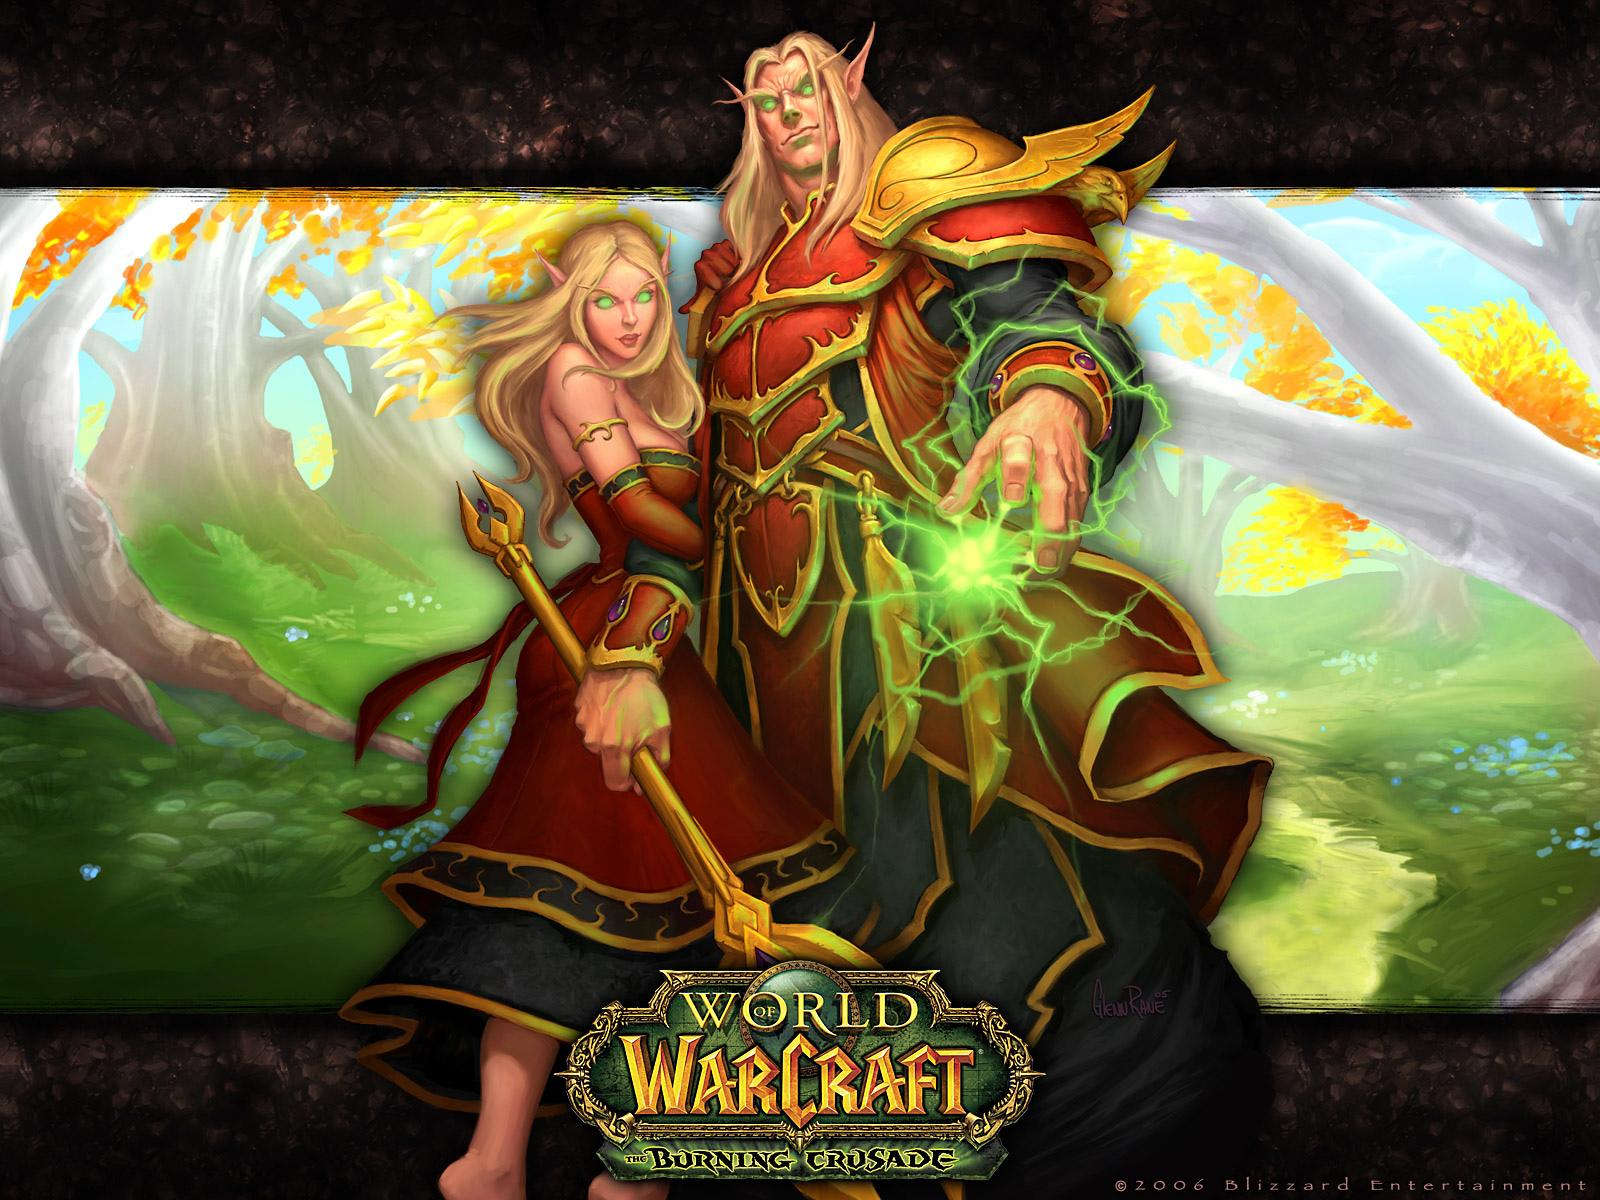 Turn into a blood elf wow naked pictures